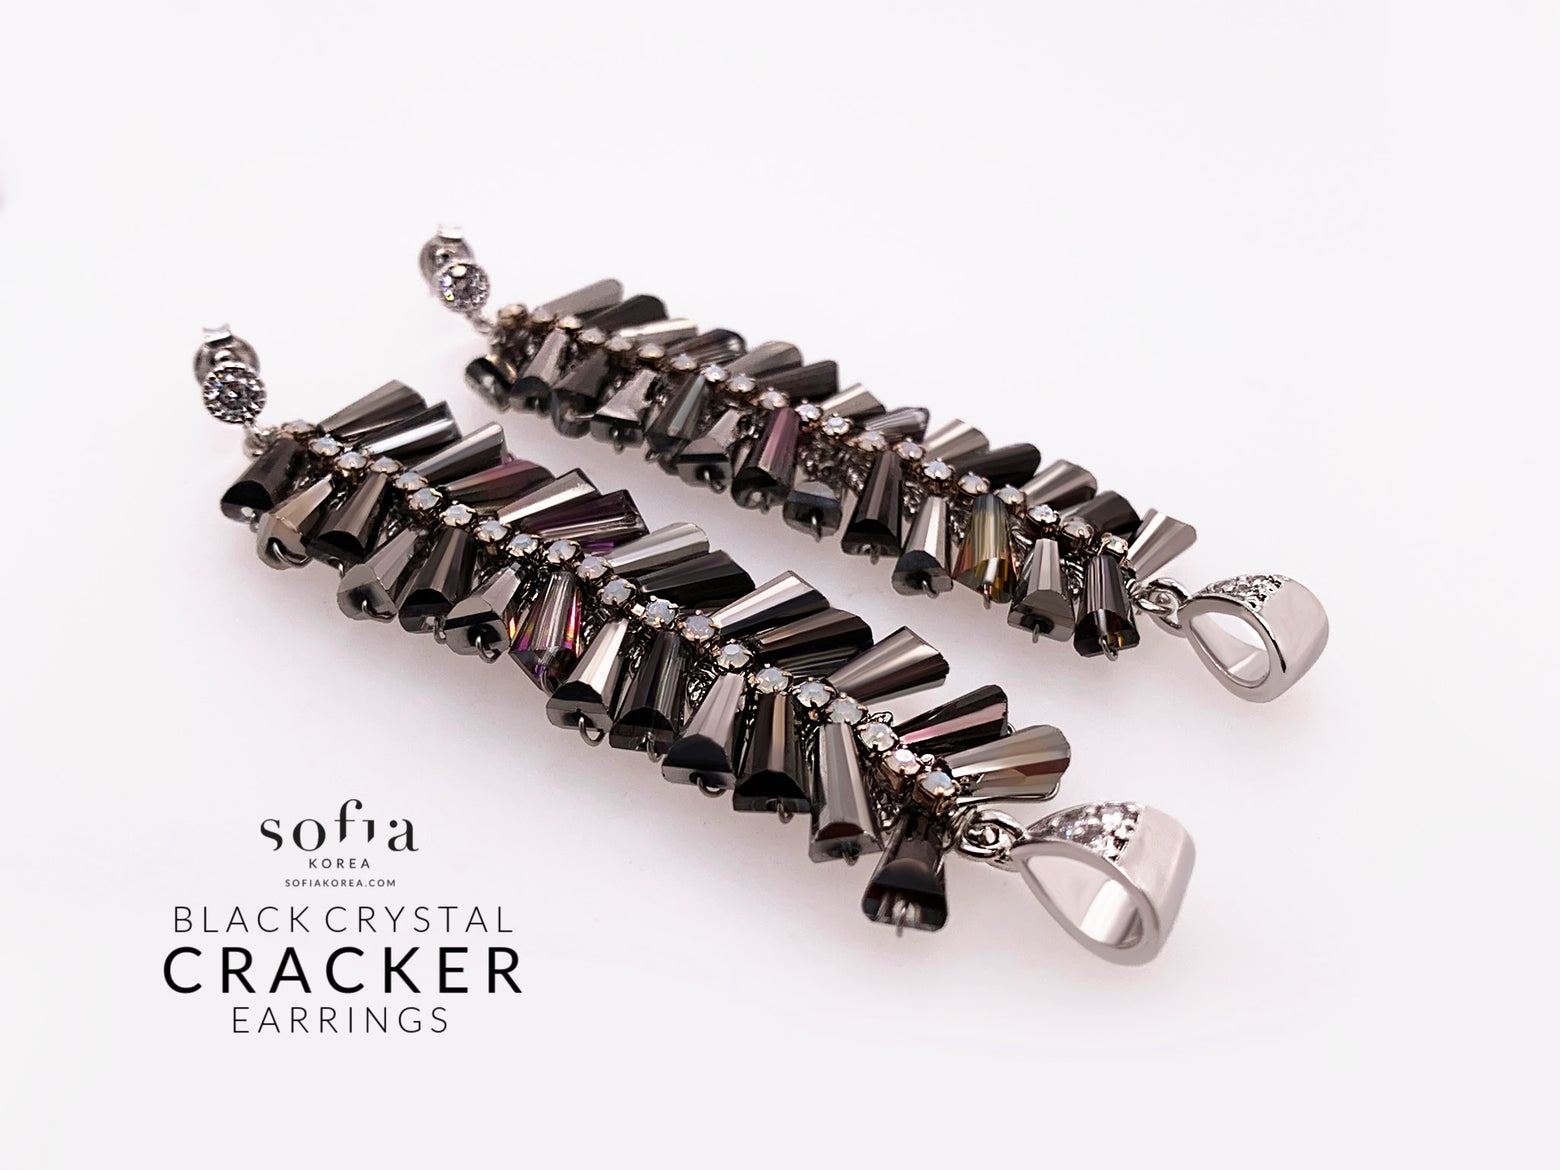 Cracker Earrings - Sofiakorea